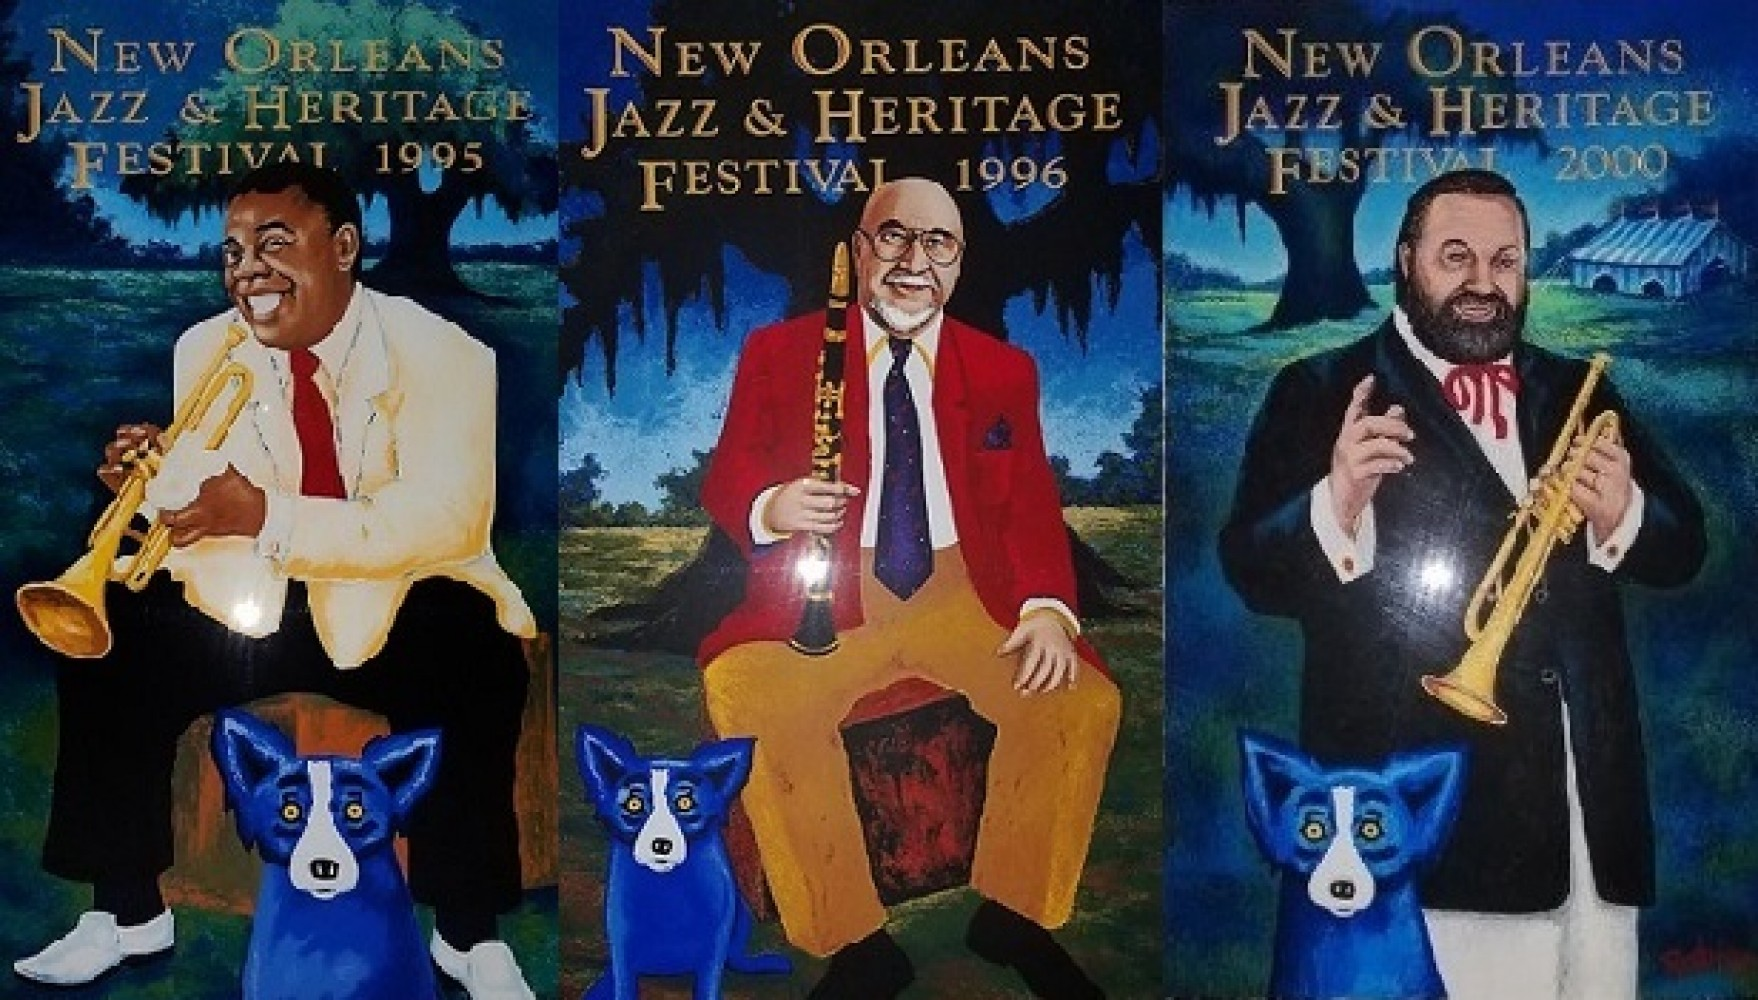 New Orleans Jazz and Heritage Festival  Suite of 3 2000